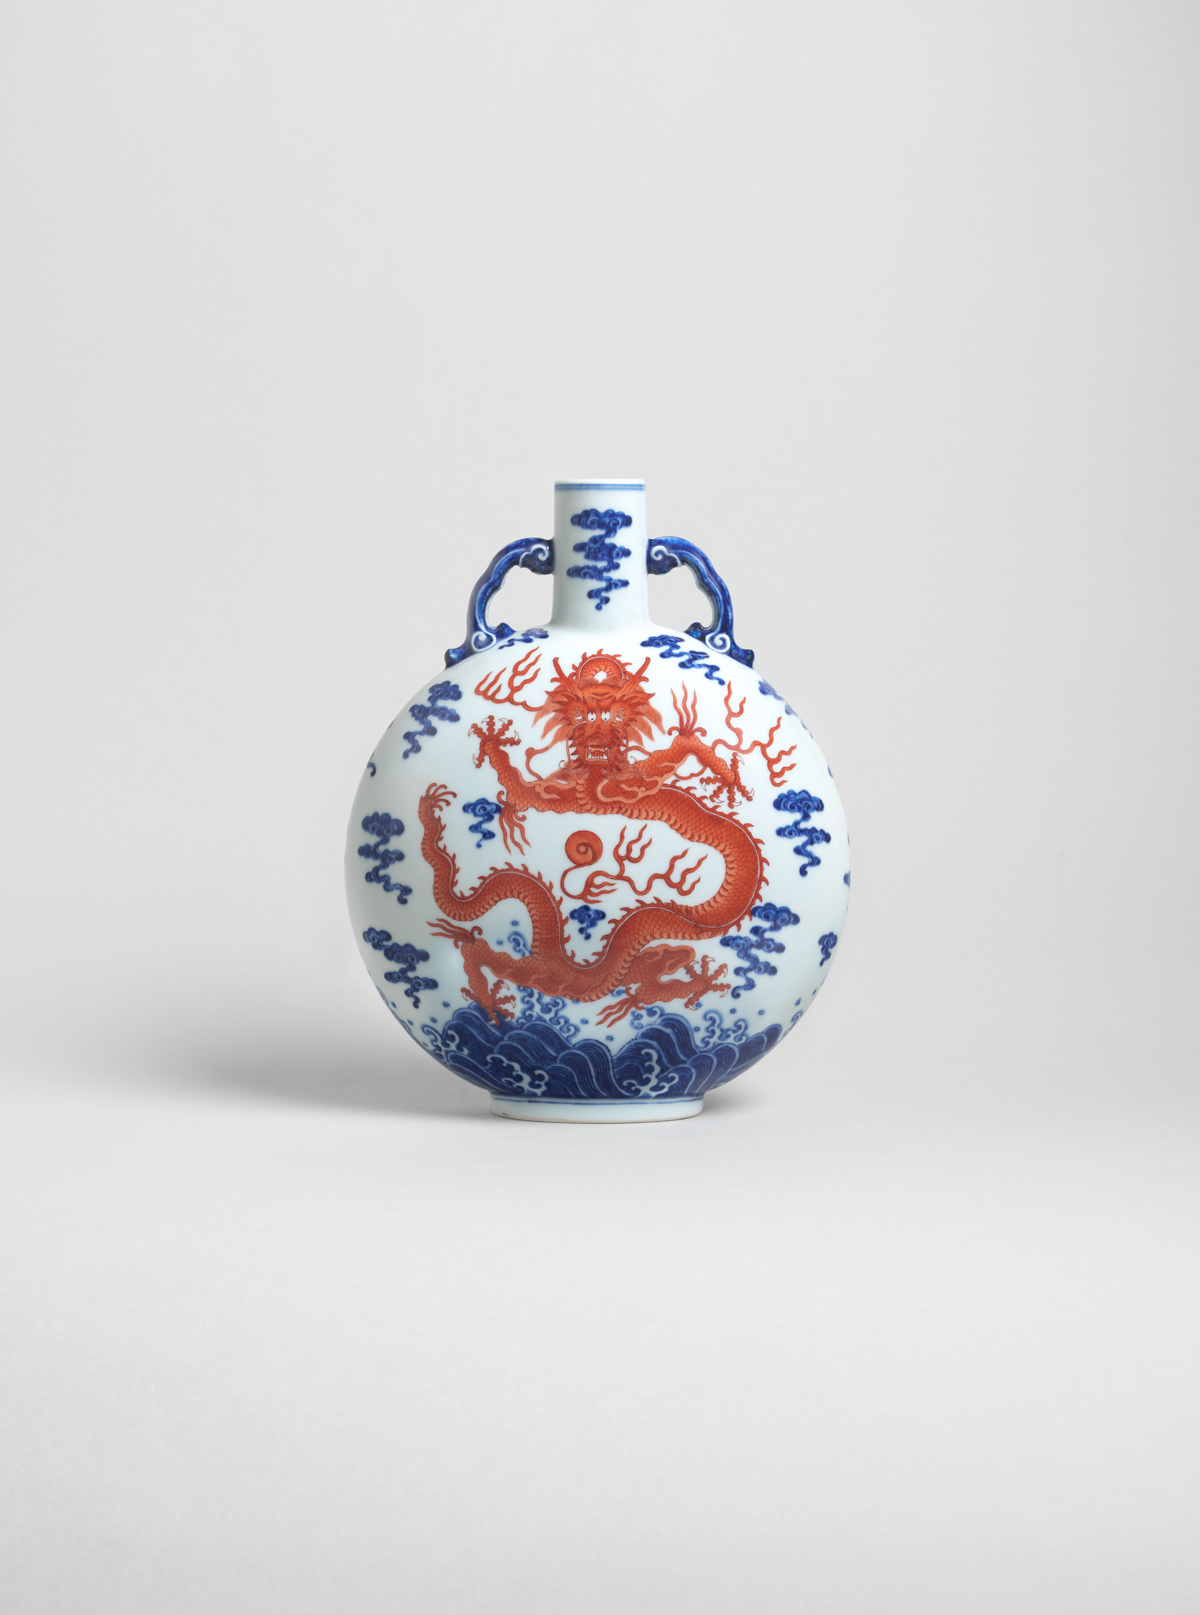 Underglaze Blue and Iron-red Porcelain Flask